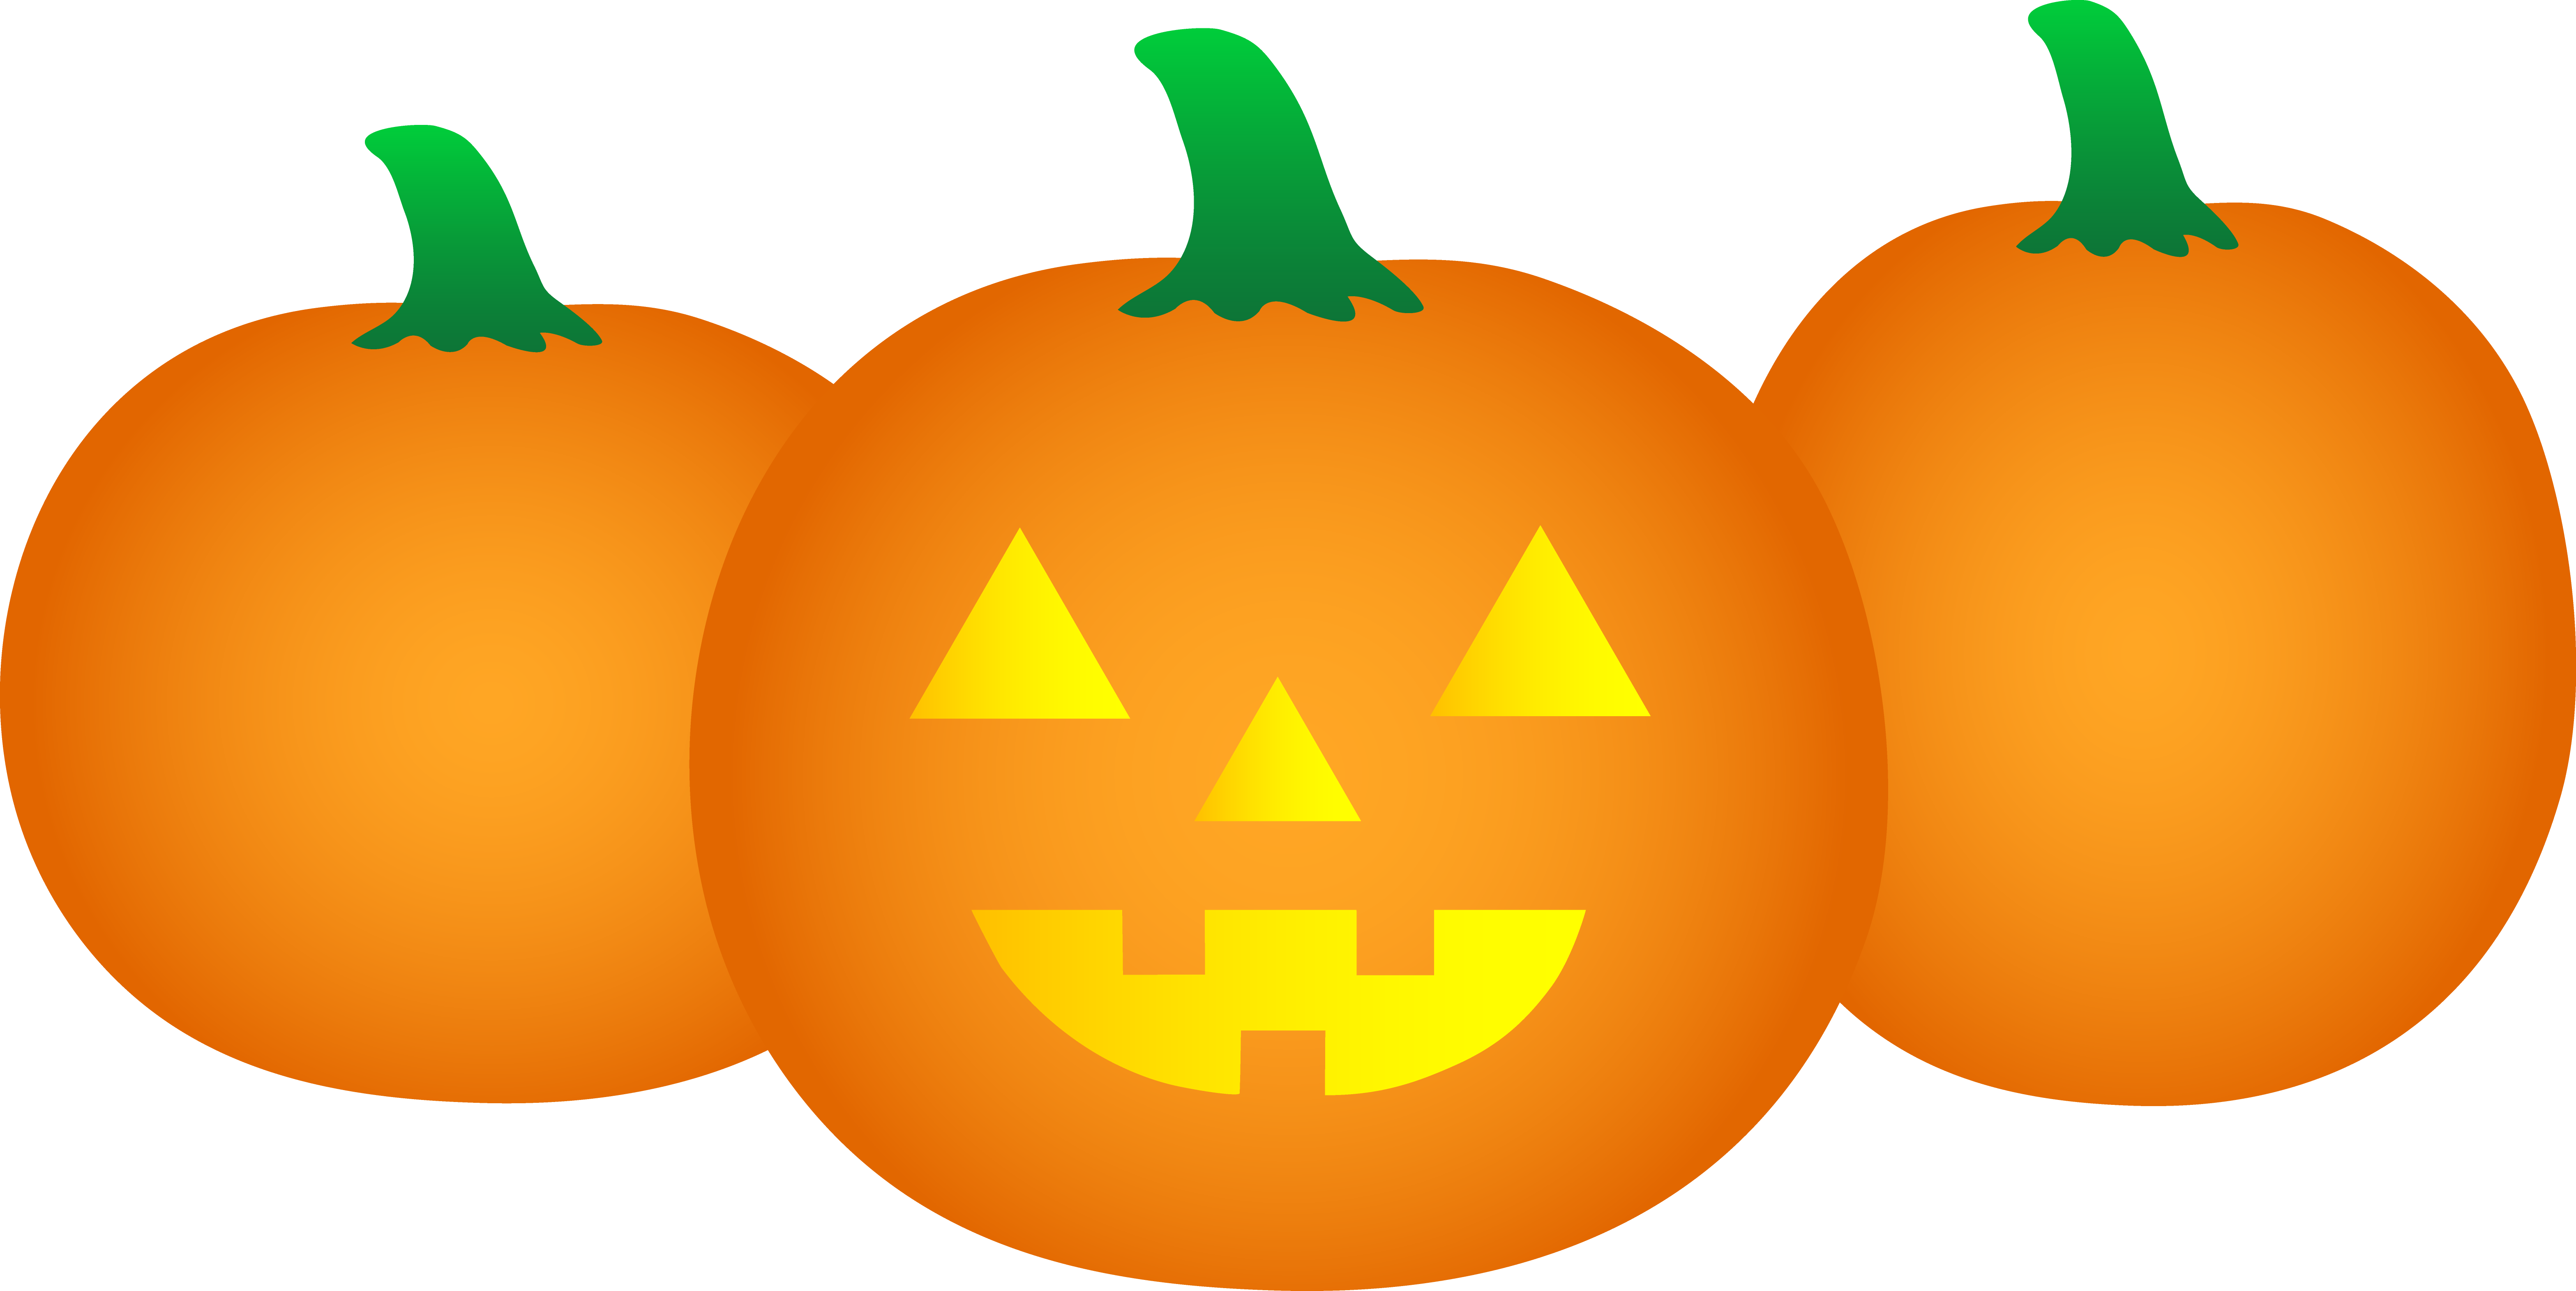 Pumkin vector carved pumpkin. Three halloween pumpkins free